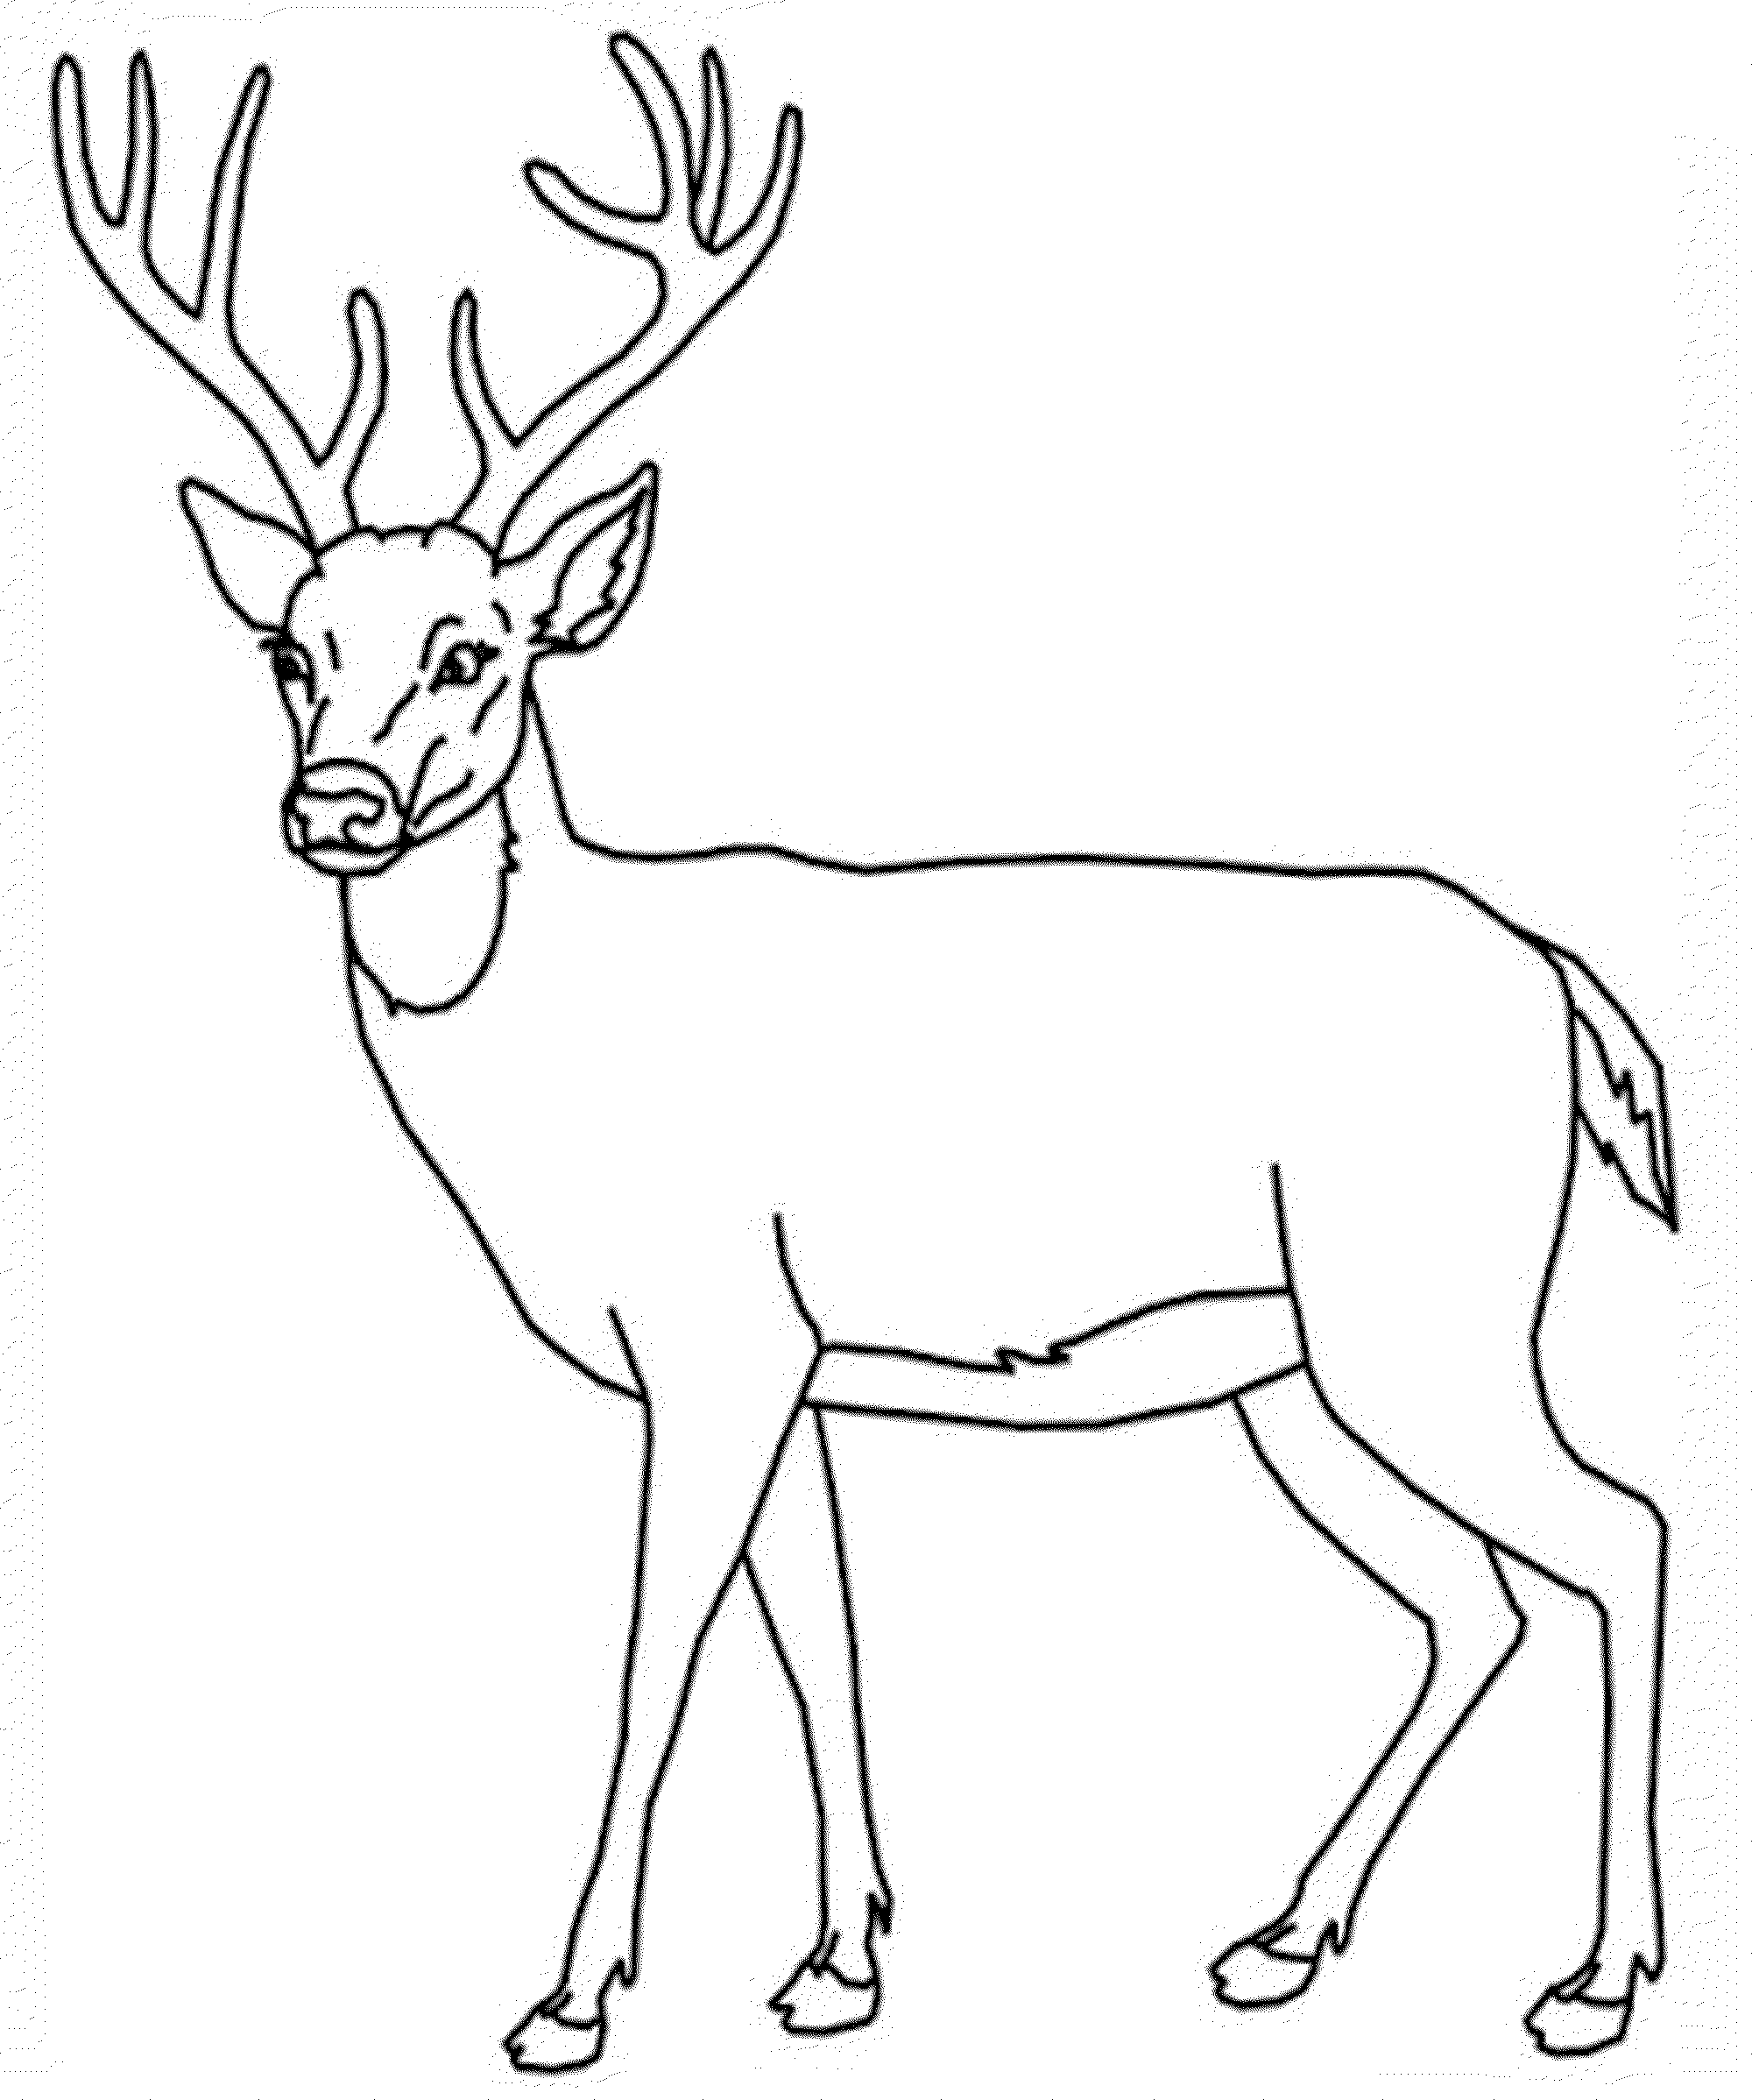 whitetail deer coloring pages free printable deer coloring pages for kids deer pages coloring whitetail